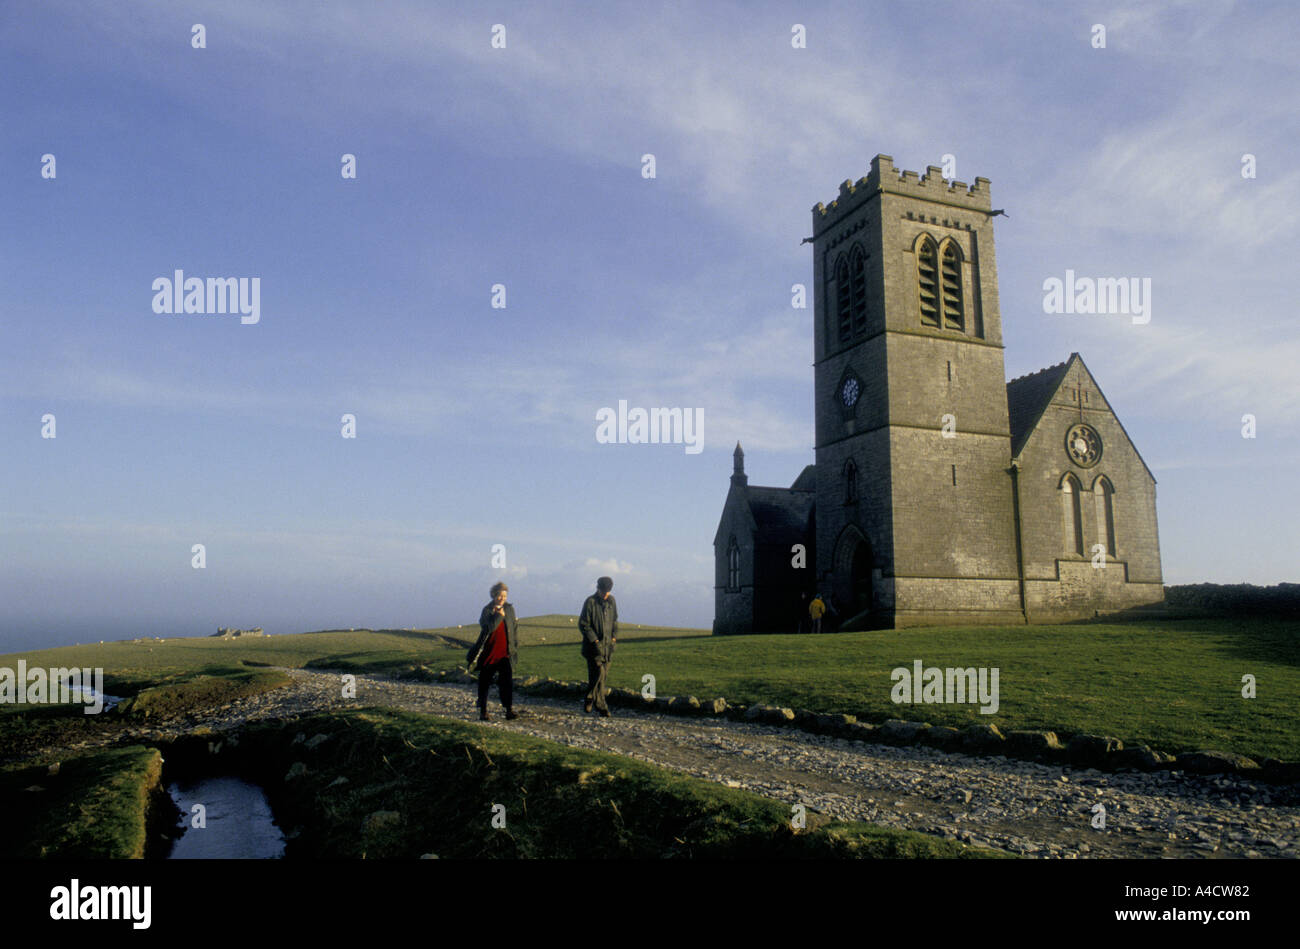 SMOKESTOP' LUNDY ISLAND 1994, SMOKESTOPPERS WALKING PAST LUNDY ISLAND'S ST. HELINA'S CHURCH. Stock Photo